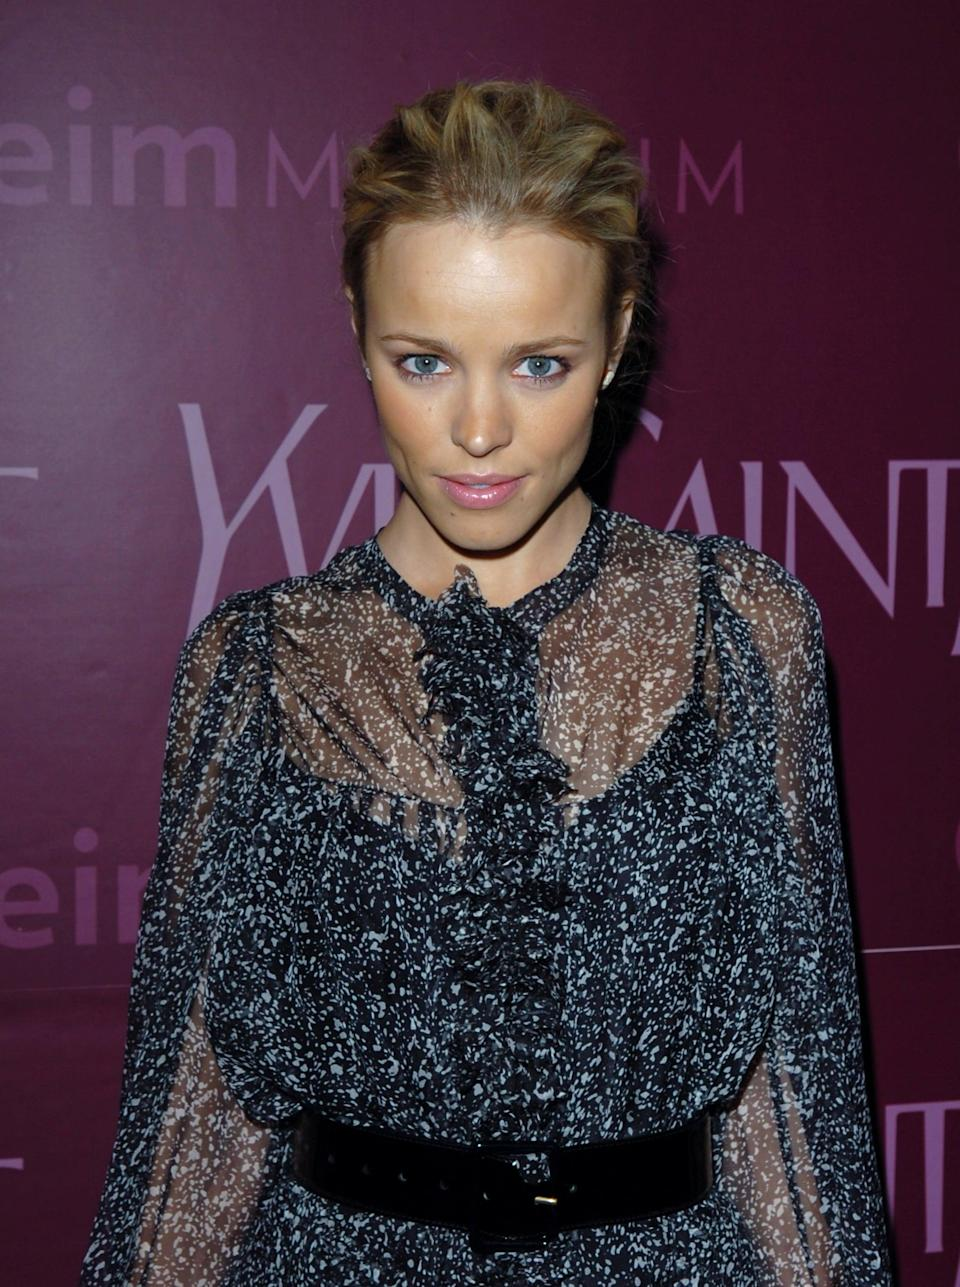 """<p>Back in 2005, <a class=""""link rapid-noclick-resp"""" href=""""https://www.popsugar.com/Rachel-McAdams"""" rel=""""nofollow noopener"""" target=""""_blank"""" data-ylk=""""slk:Rachel McAdams"""">Rachel McAdams</a> wore a demure chiffon midi dress, which she accessorized with a thick black belt and patent Mary Janes. This year, modest fashion has been one of the biggest trends, with higher necklines, longer hemlines, and bigger sleeves slowly but surely taking over our closets.</p>"""